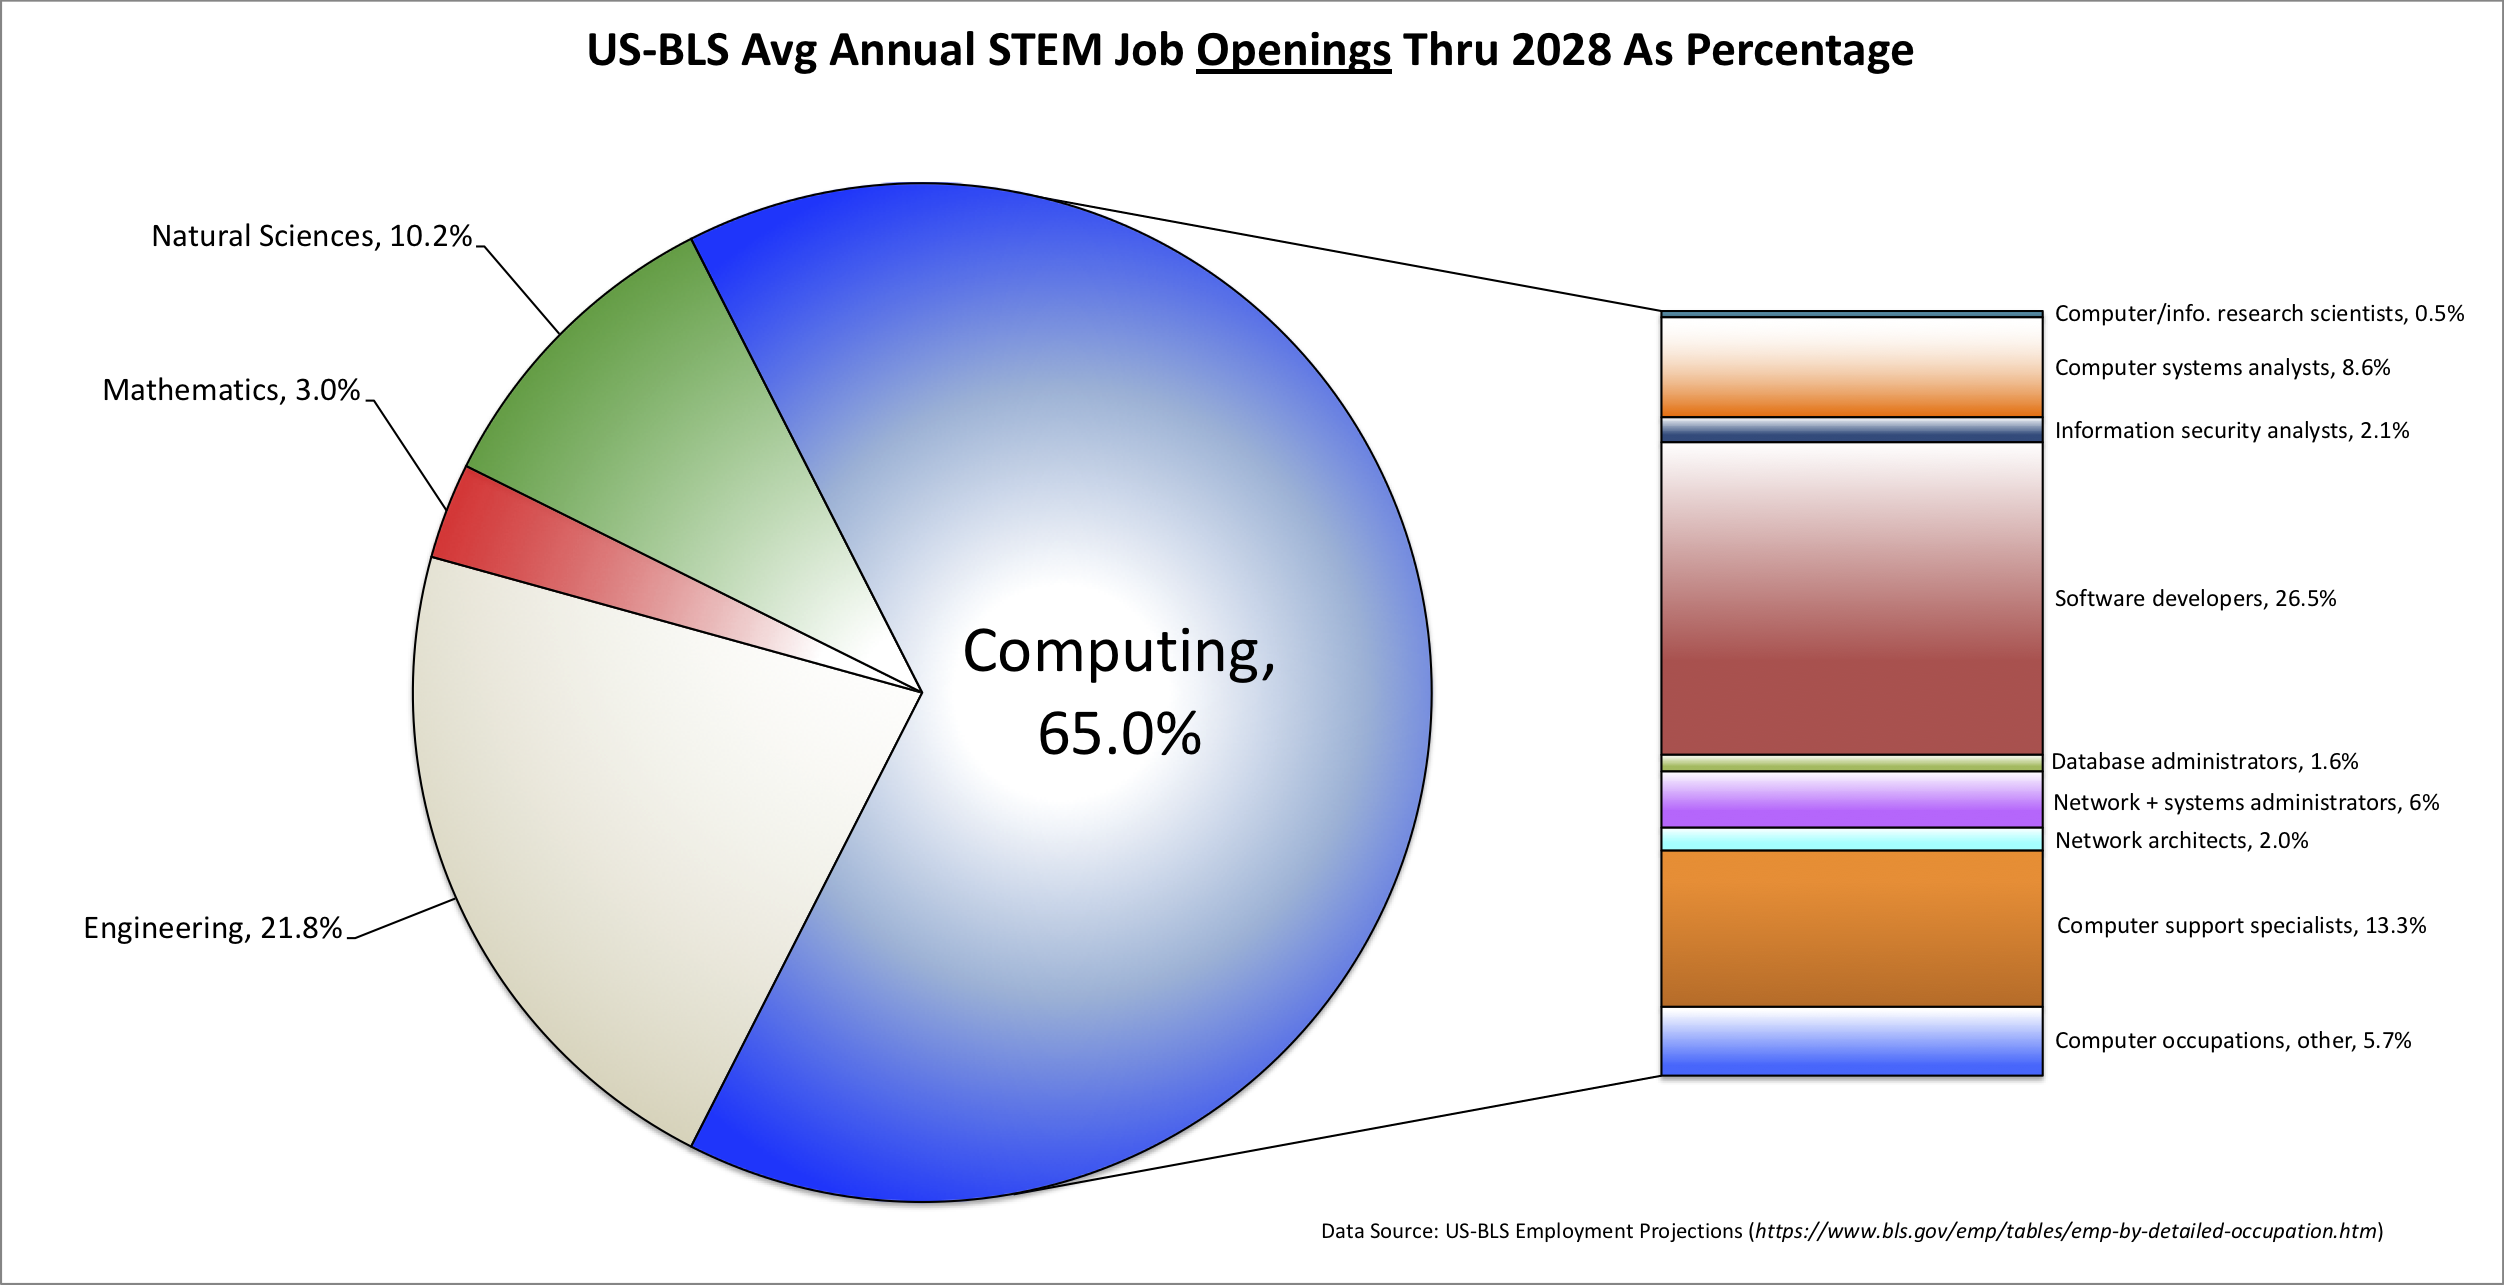 The U.S. Bureau of Labor predicts that between now and 2028,               63% of all STEM jobs will be computing jobs